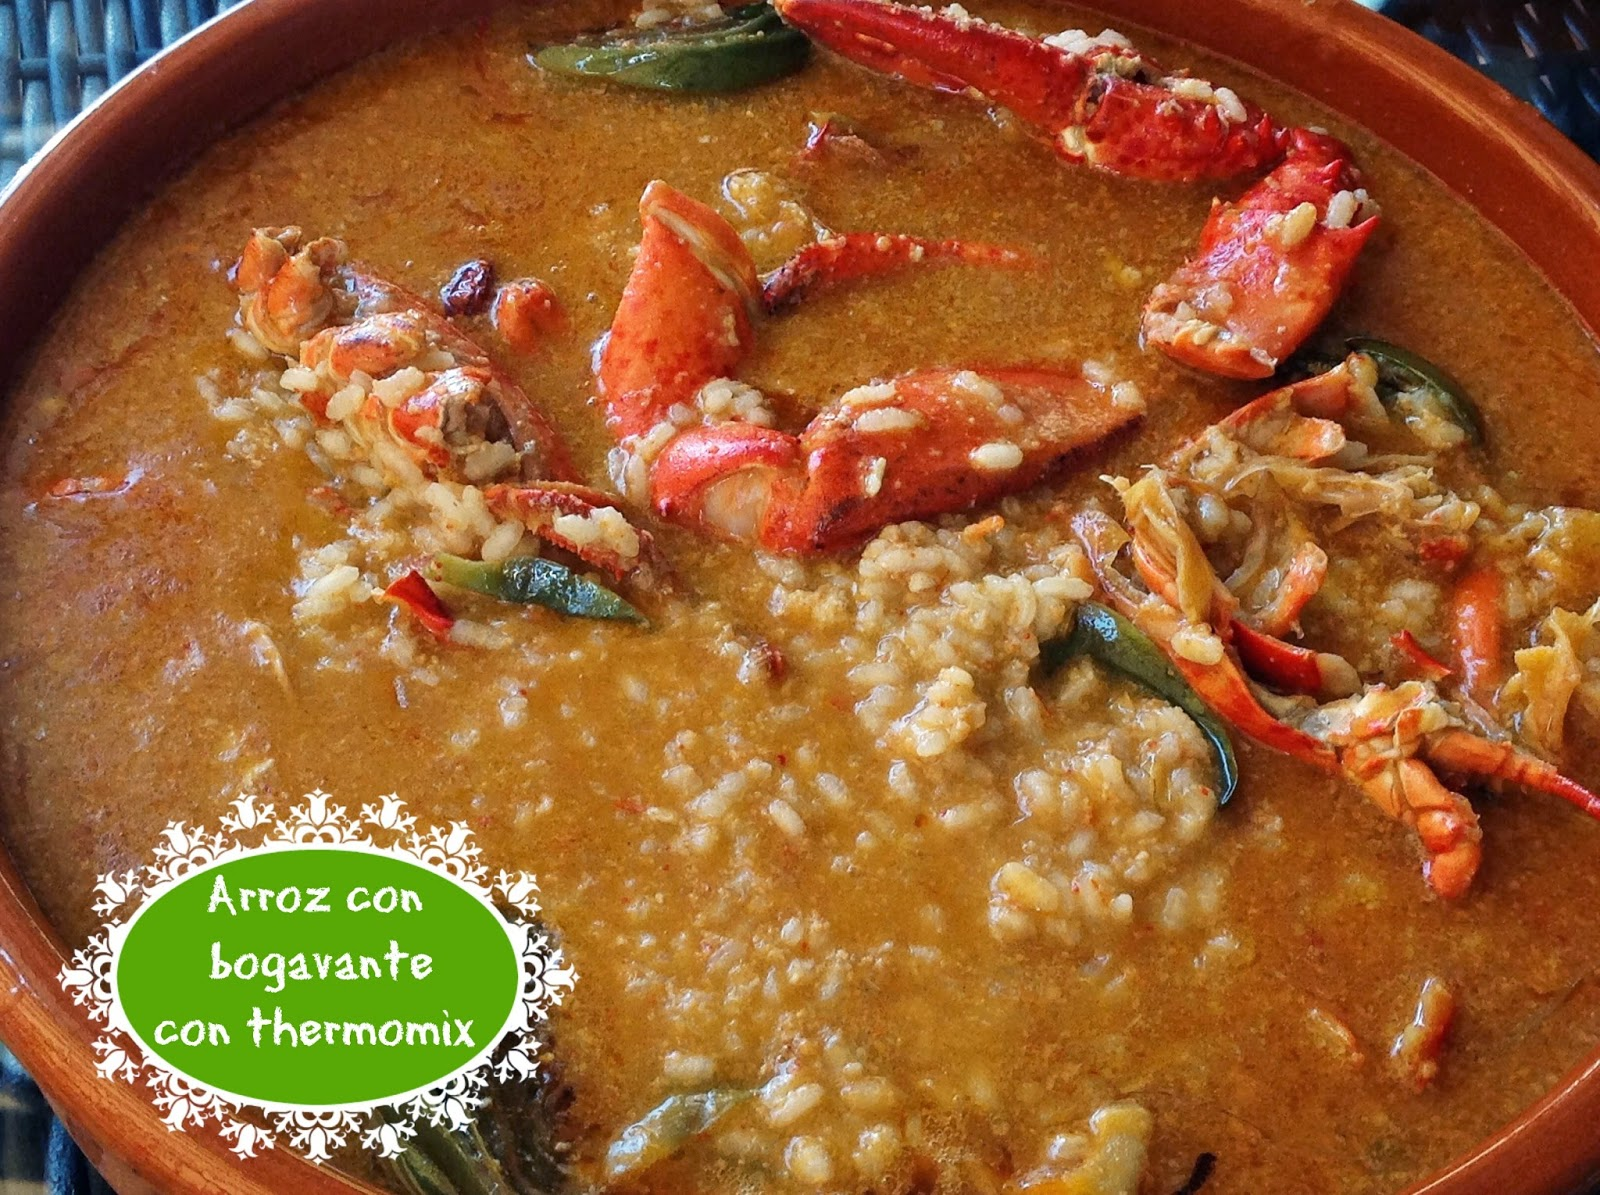 ARROZ CON BOGAVANTE CON THERMOMIX